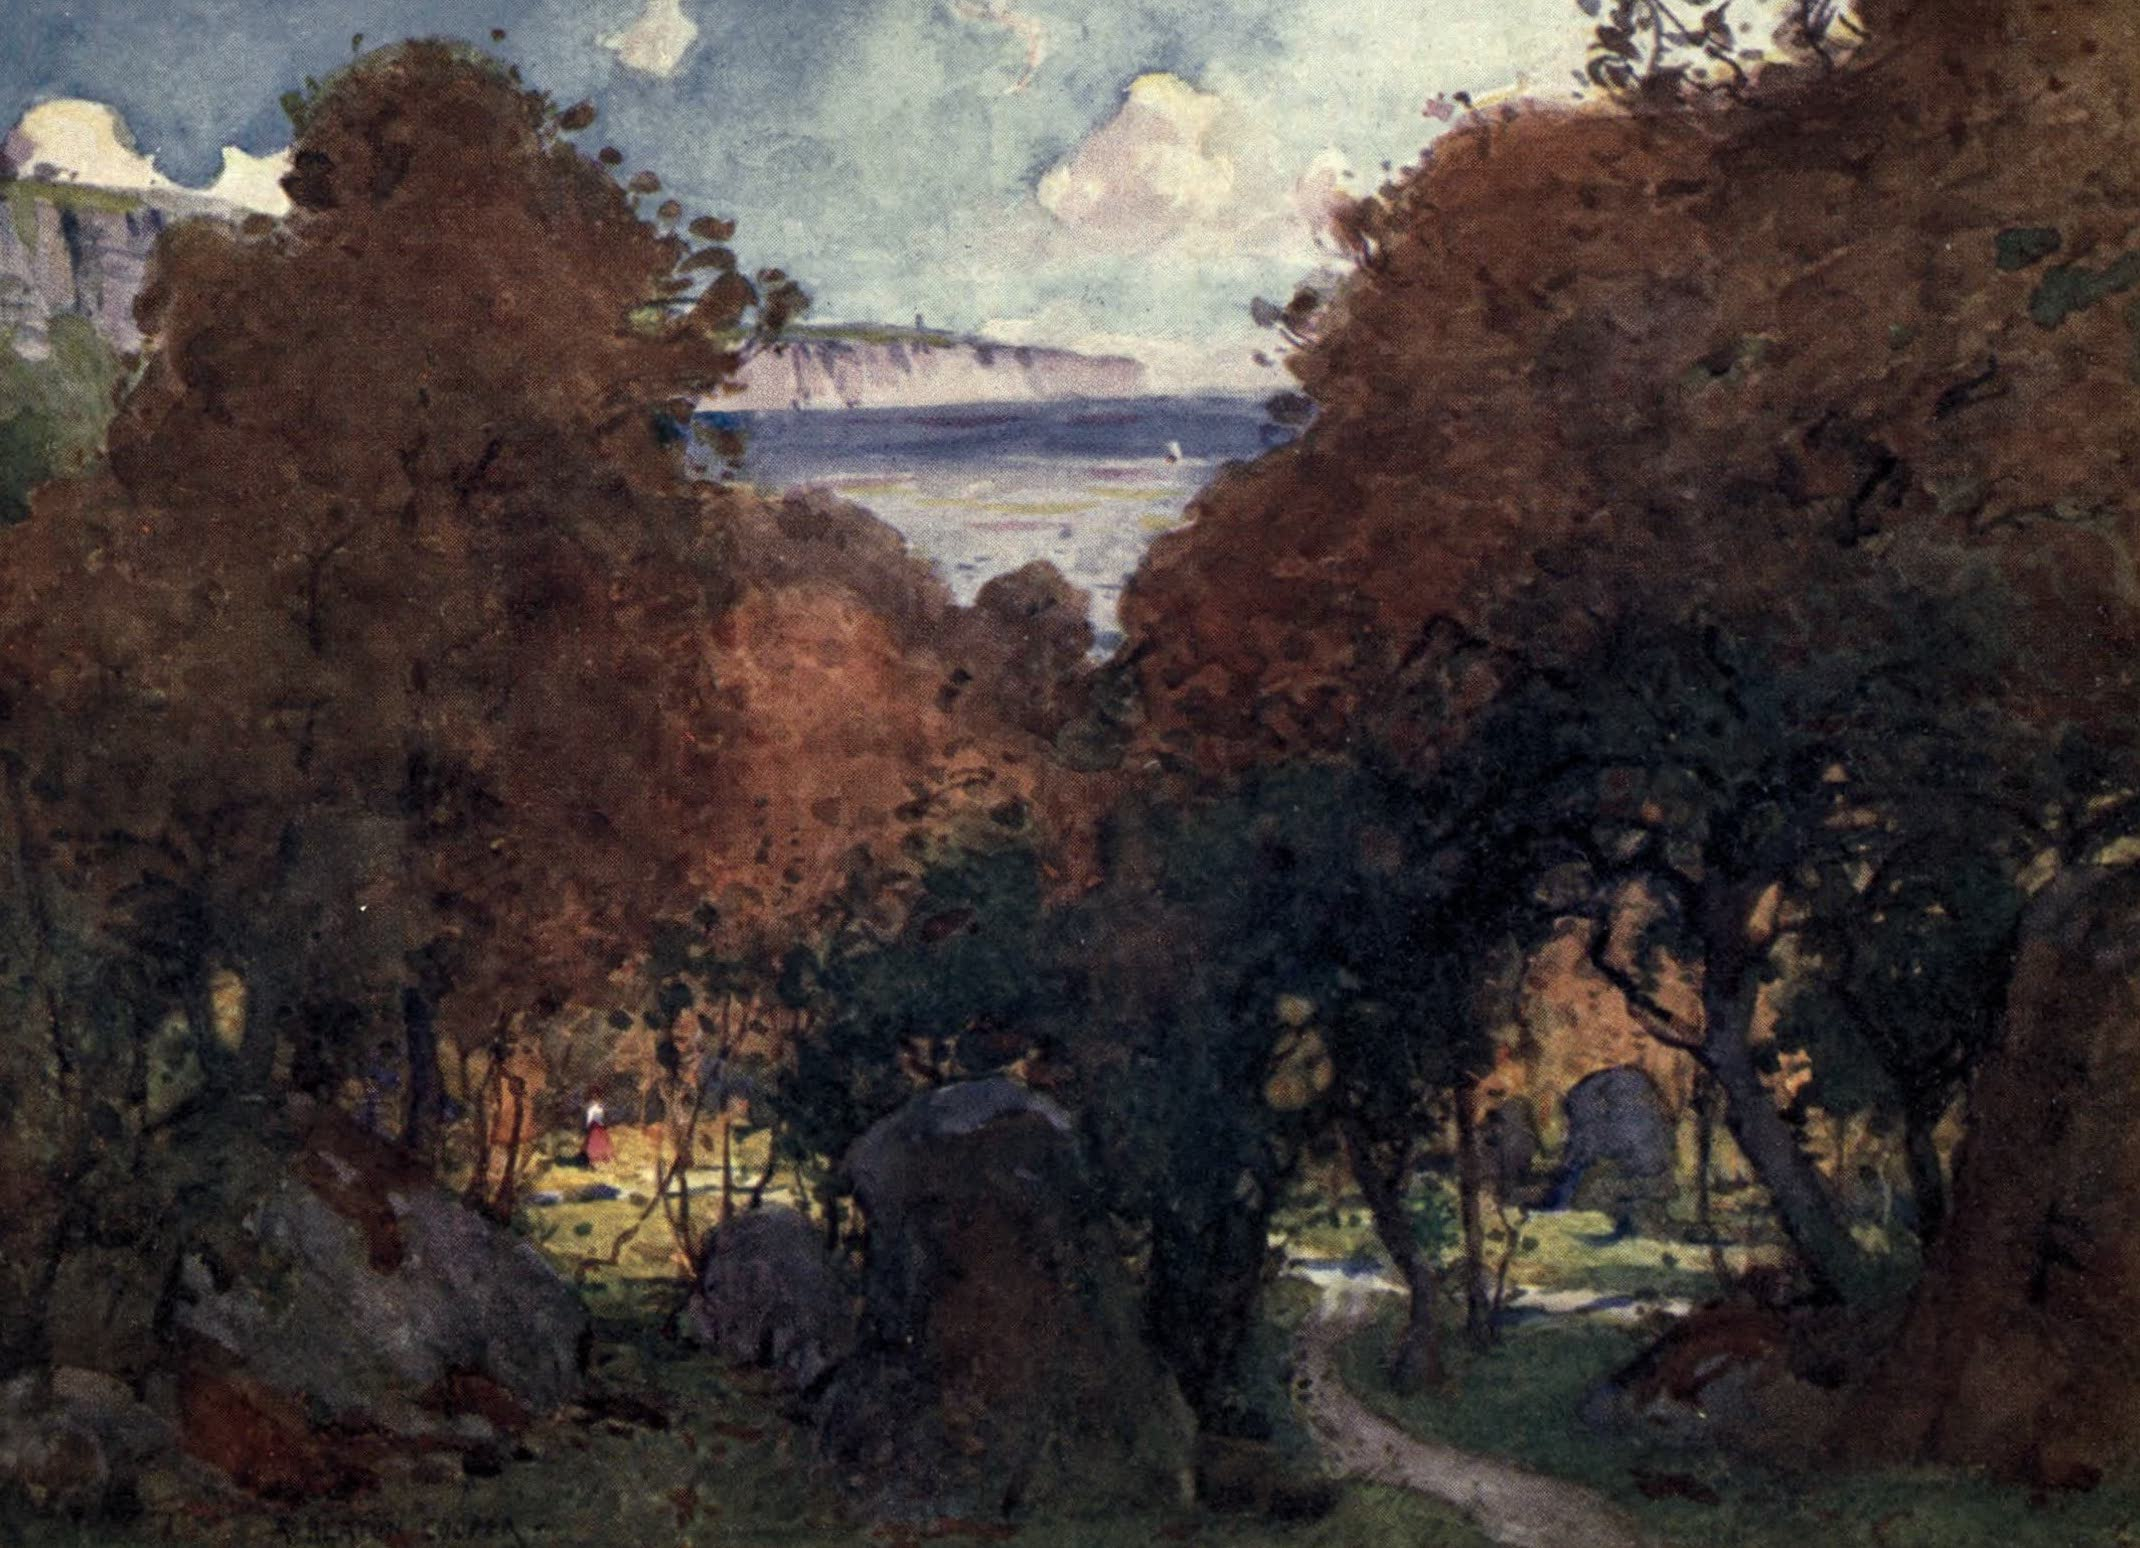 Isle of Wight Painted and Described - The Landslip near Ventnor (1908)